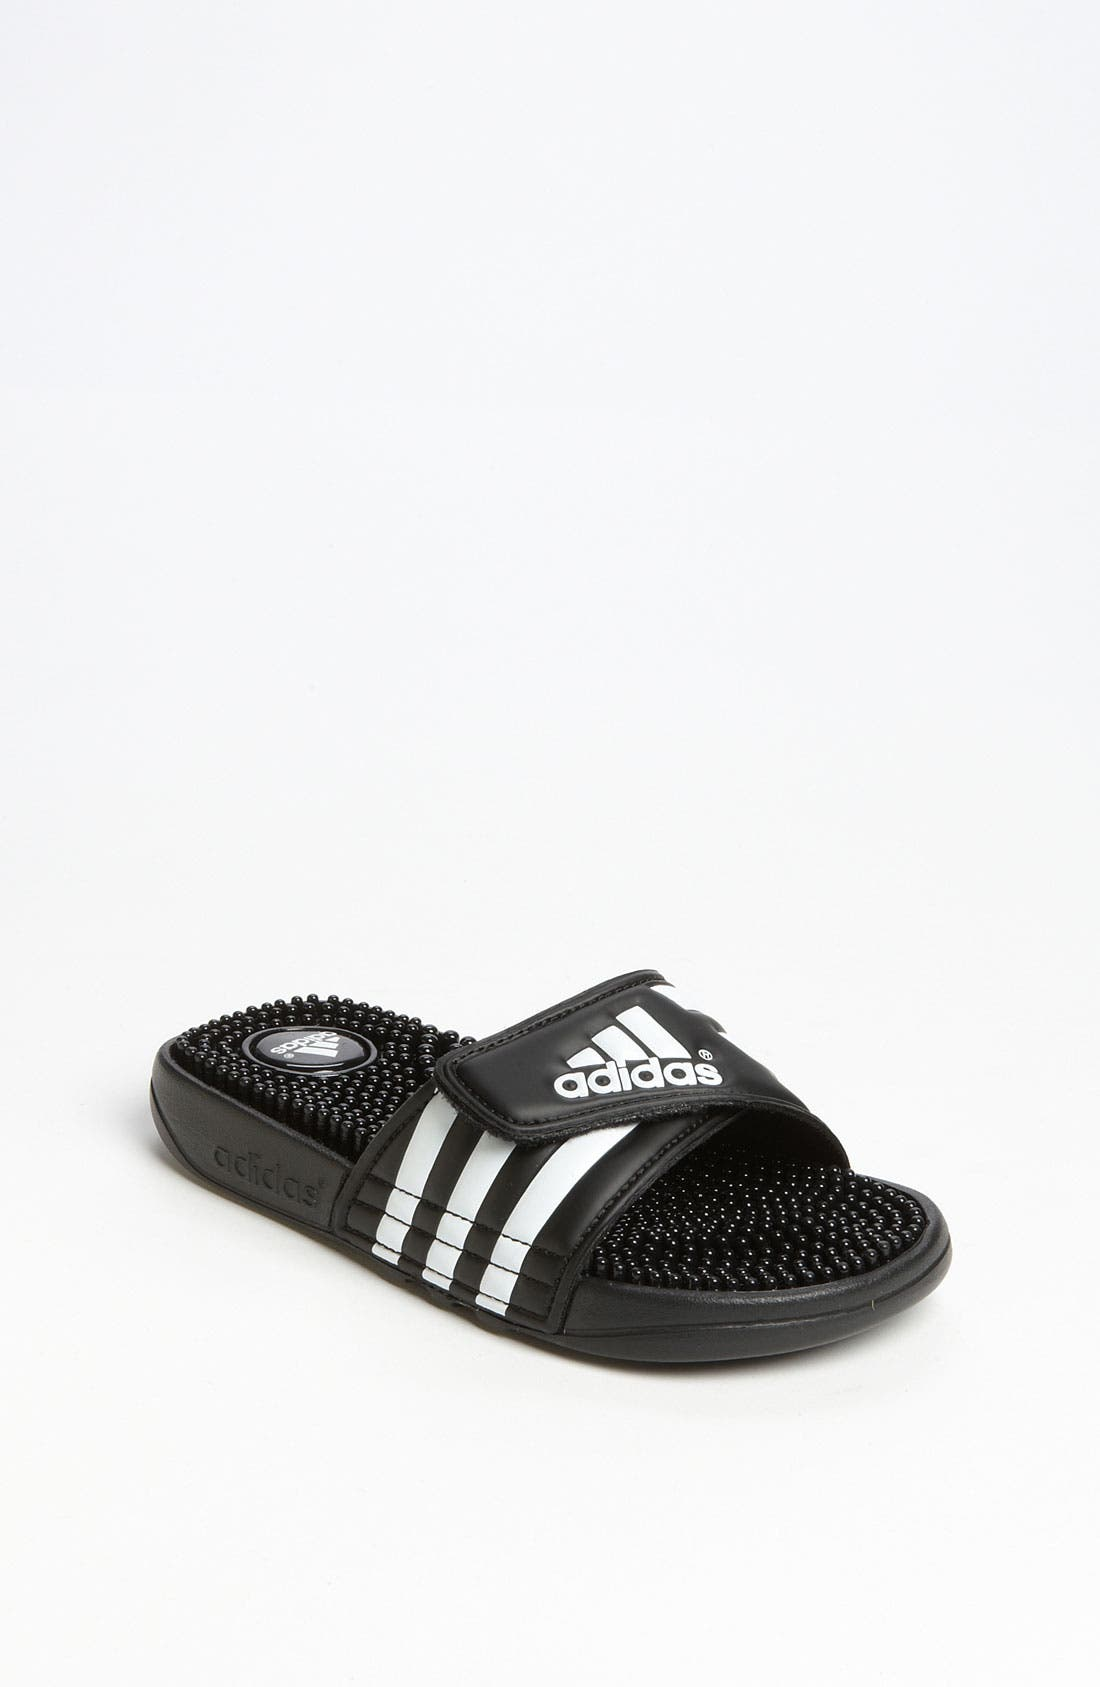 Alternate Image 1 Selected - adidas 'Adissage' Sandal (Toddler, Little Kid & Big Kid)